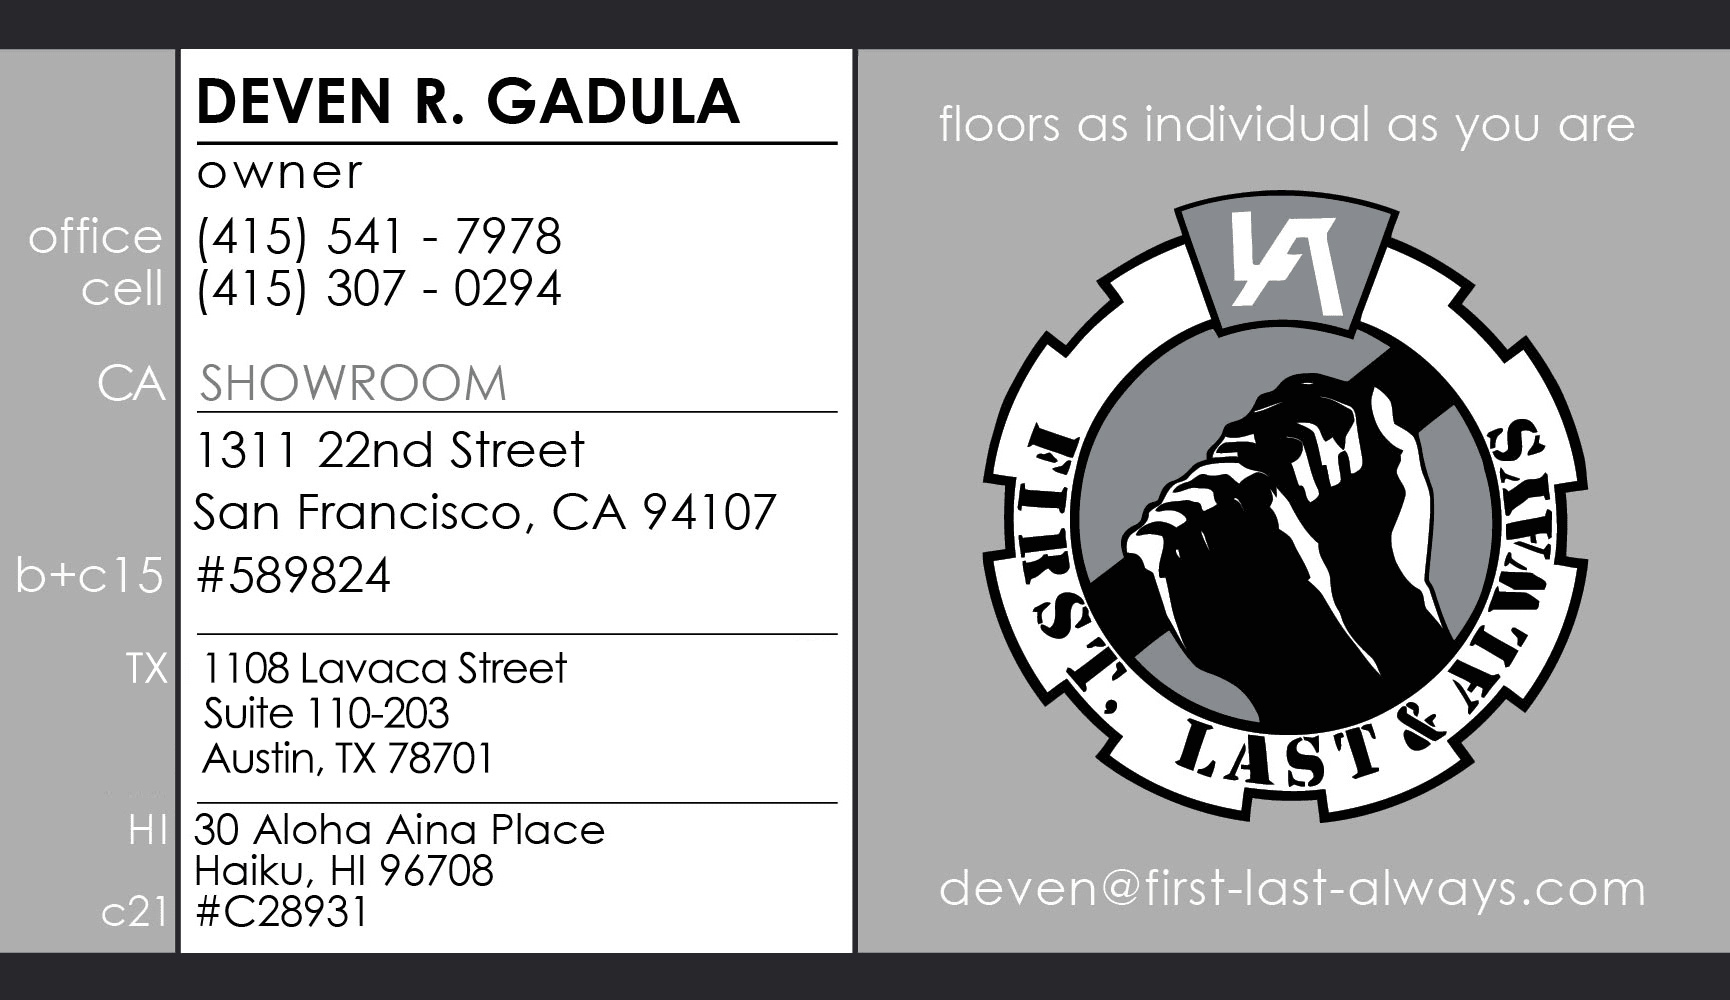 business_card_deven